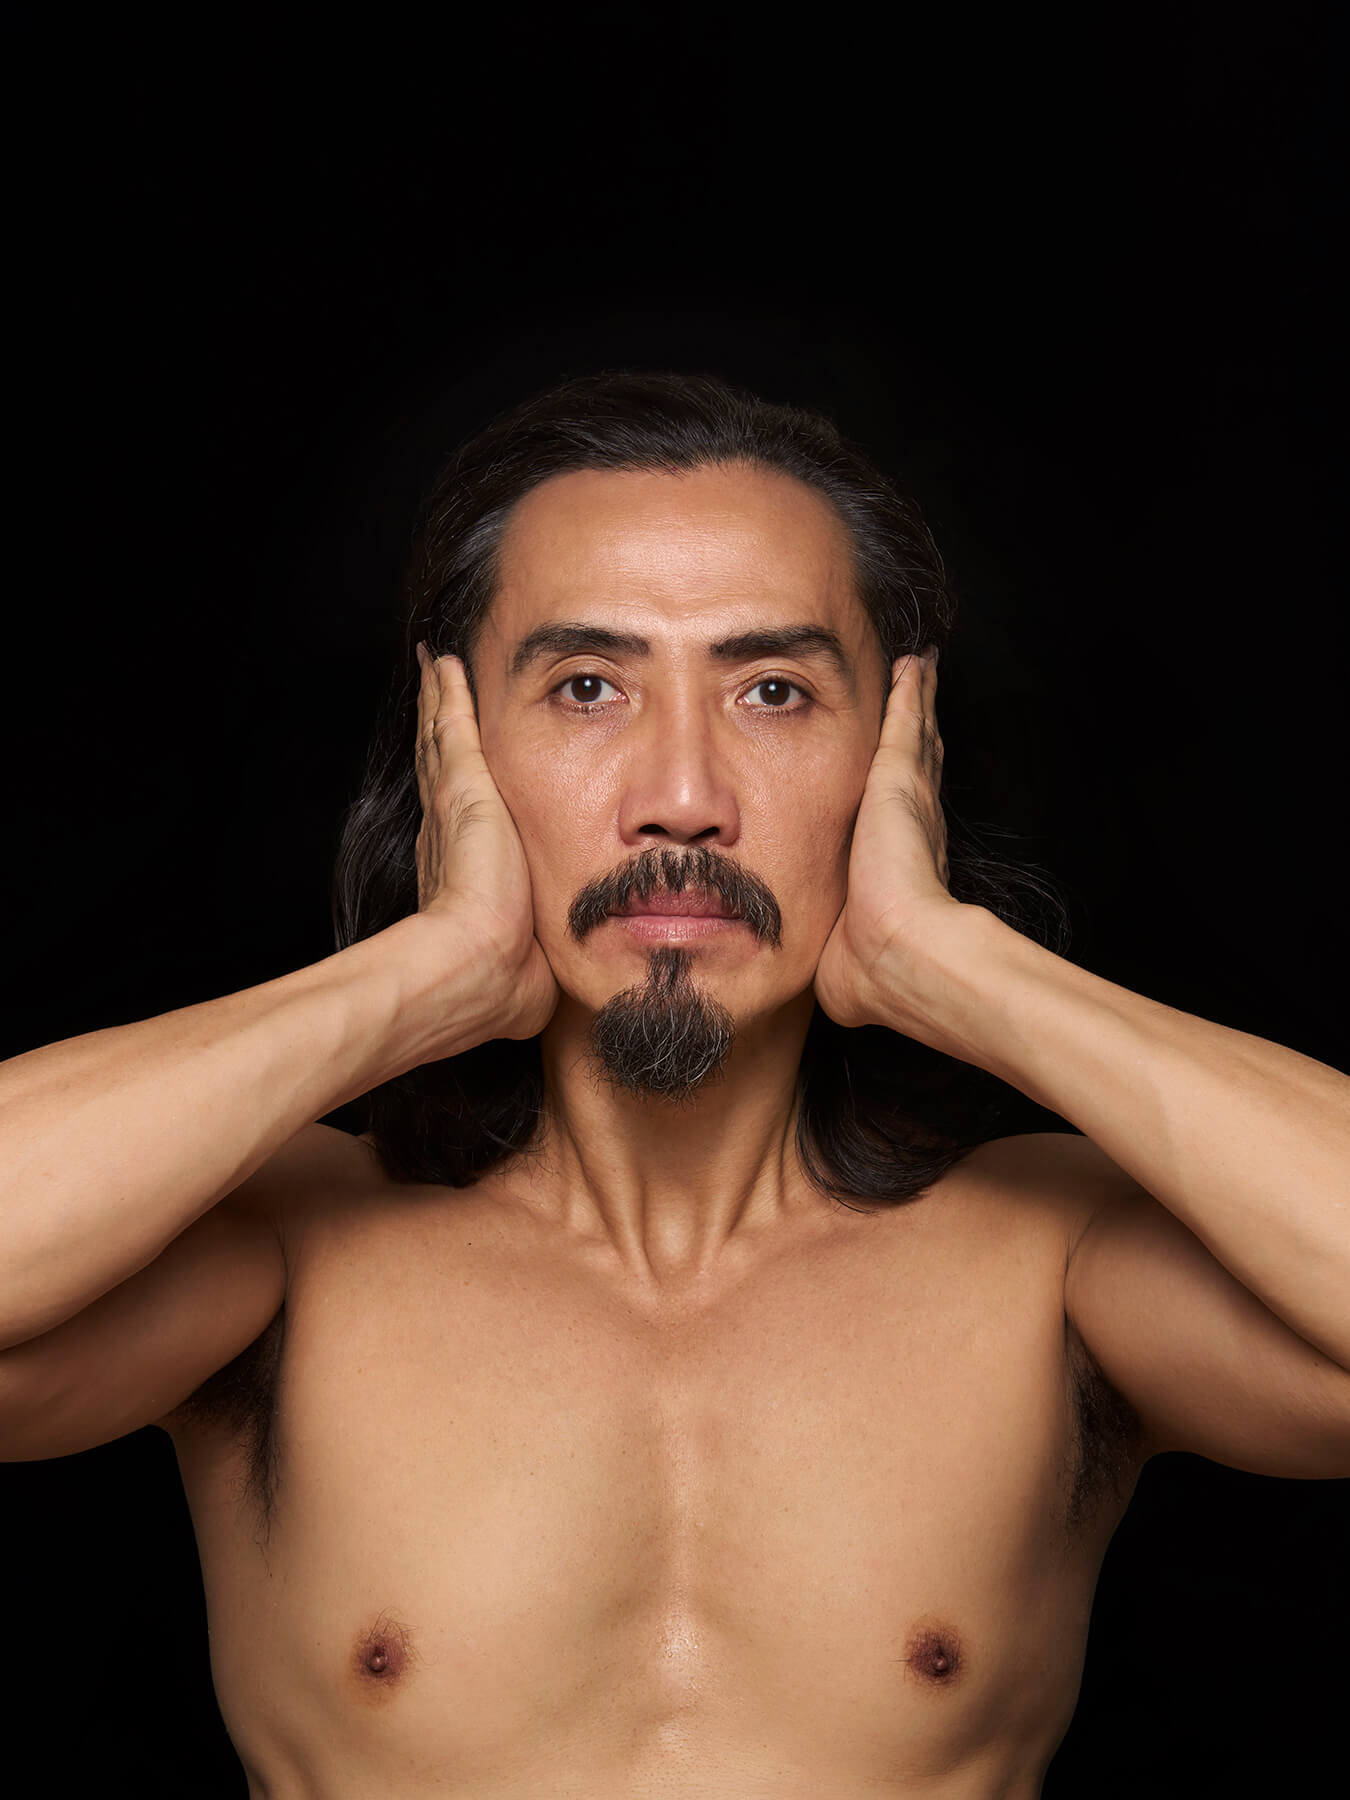 27 Feb 2018 Derong is photographed topless, covering his ears